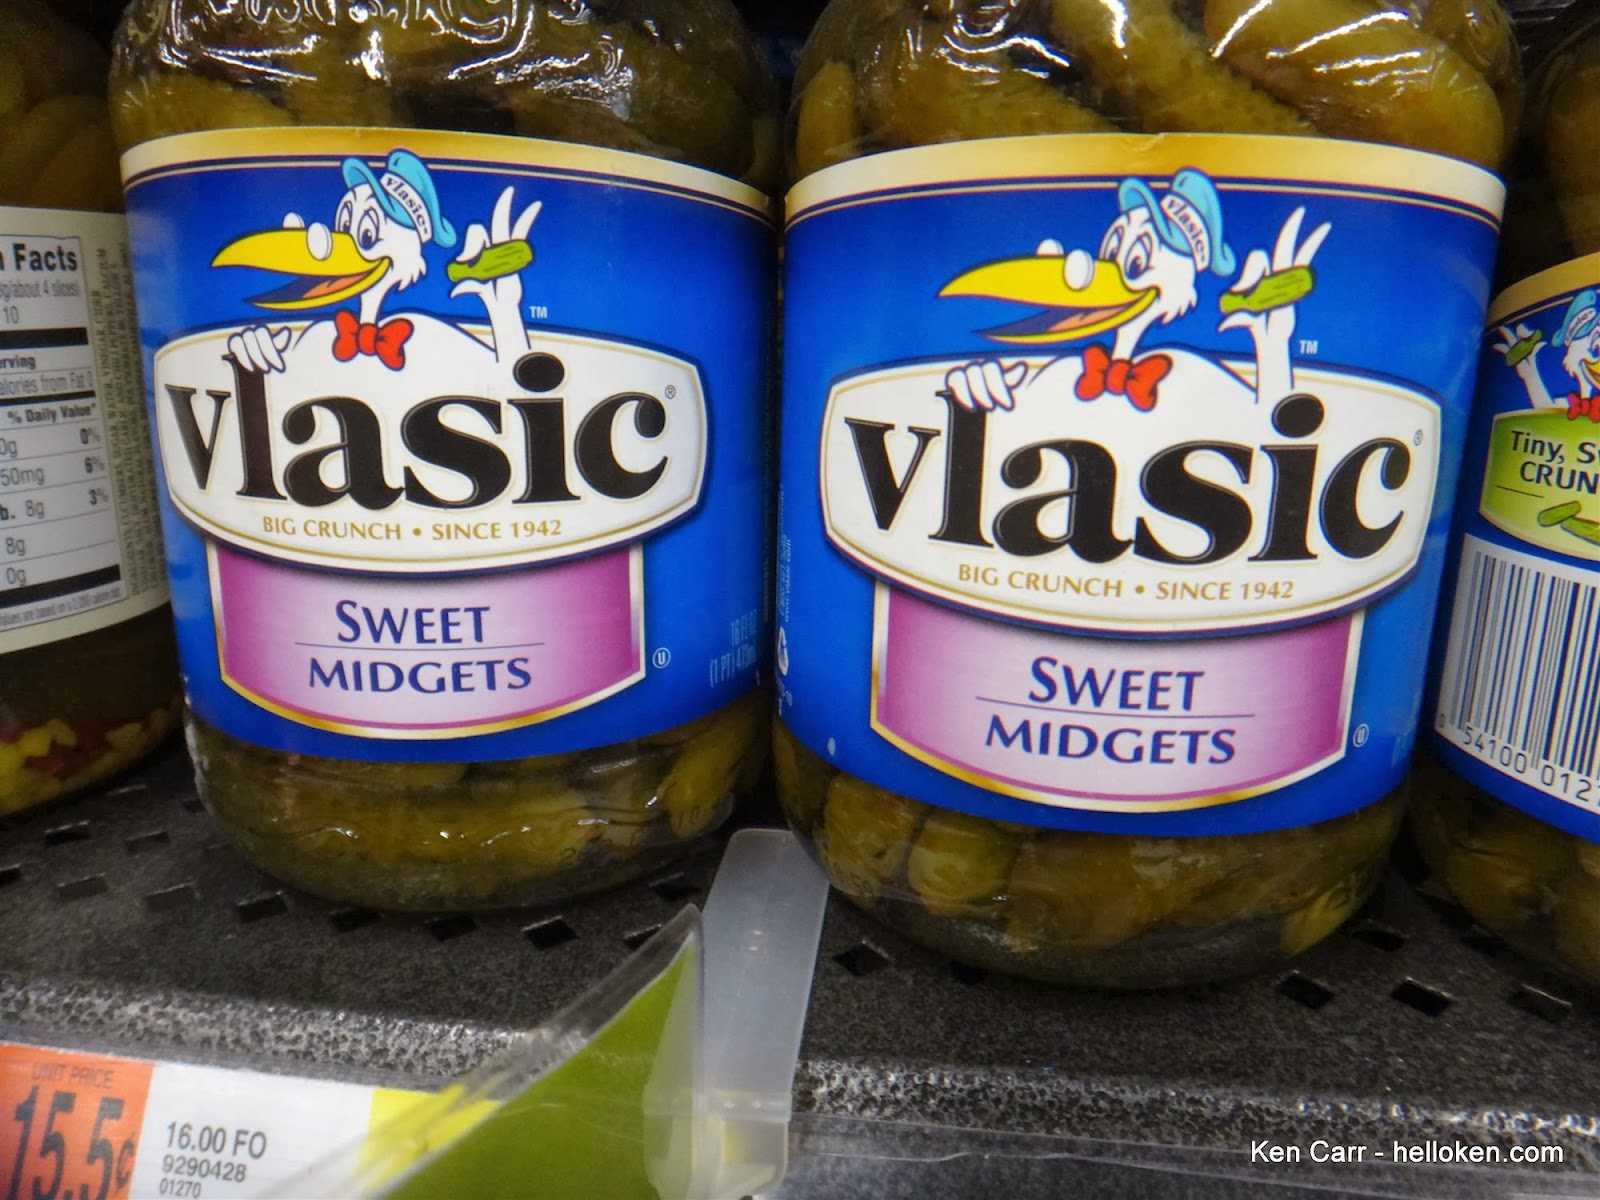 walmart vlasic deal - there's an awesome new printable $1/1 vlasic coupon available making it free at walmart this is just in time for memorial day when you may want to stock u - vlasic relish coupon deal = free at walmart | coupons.